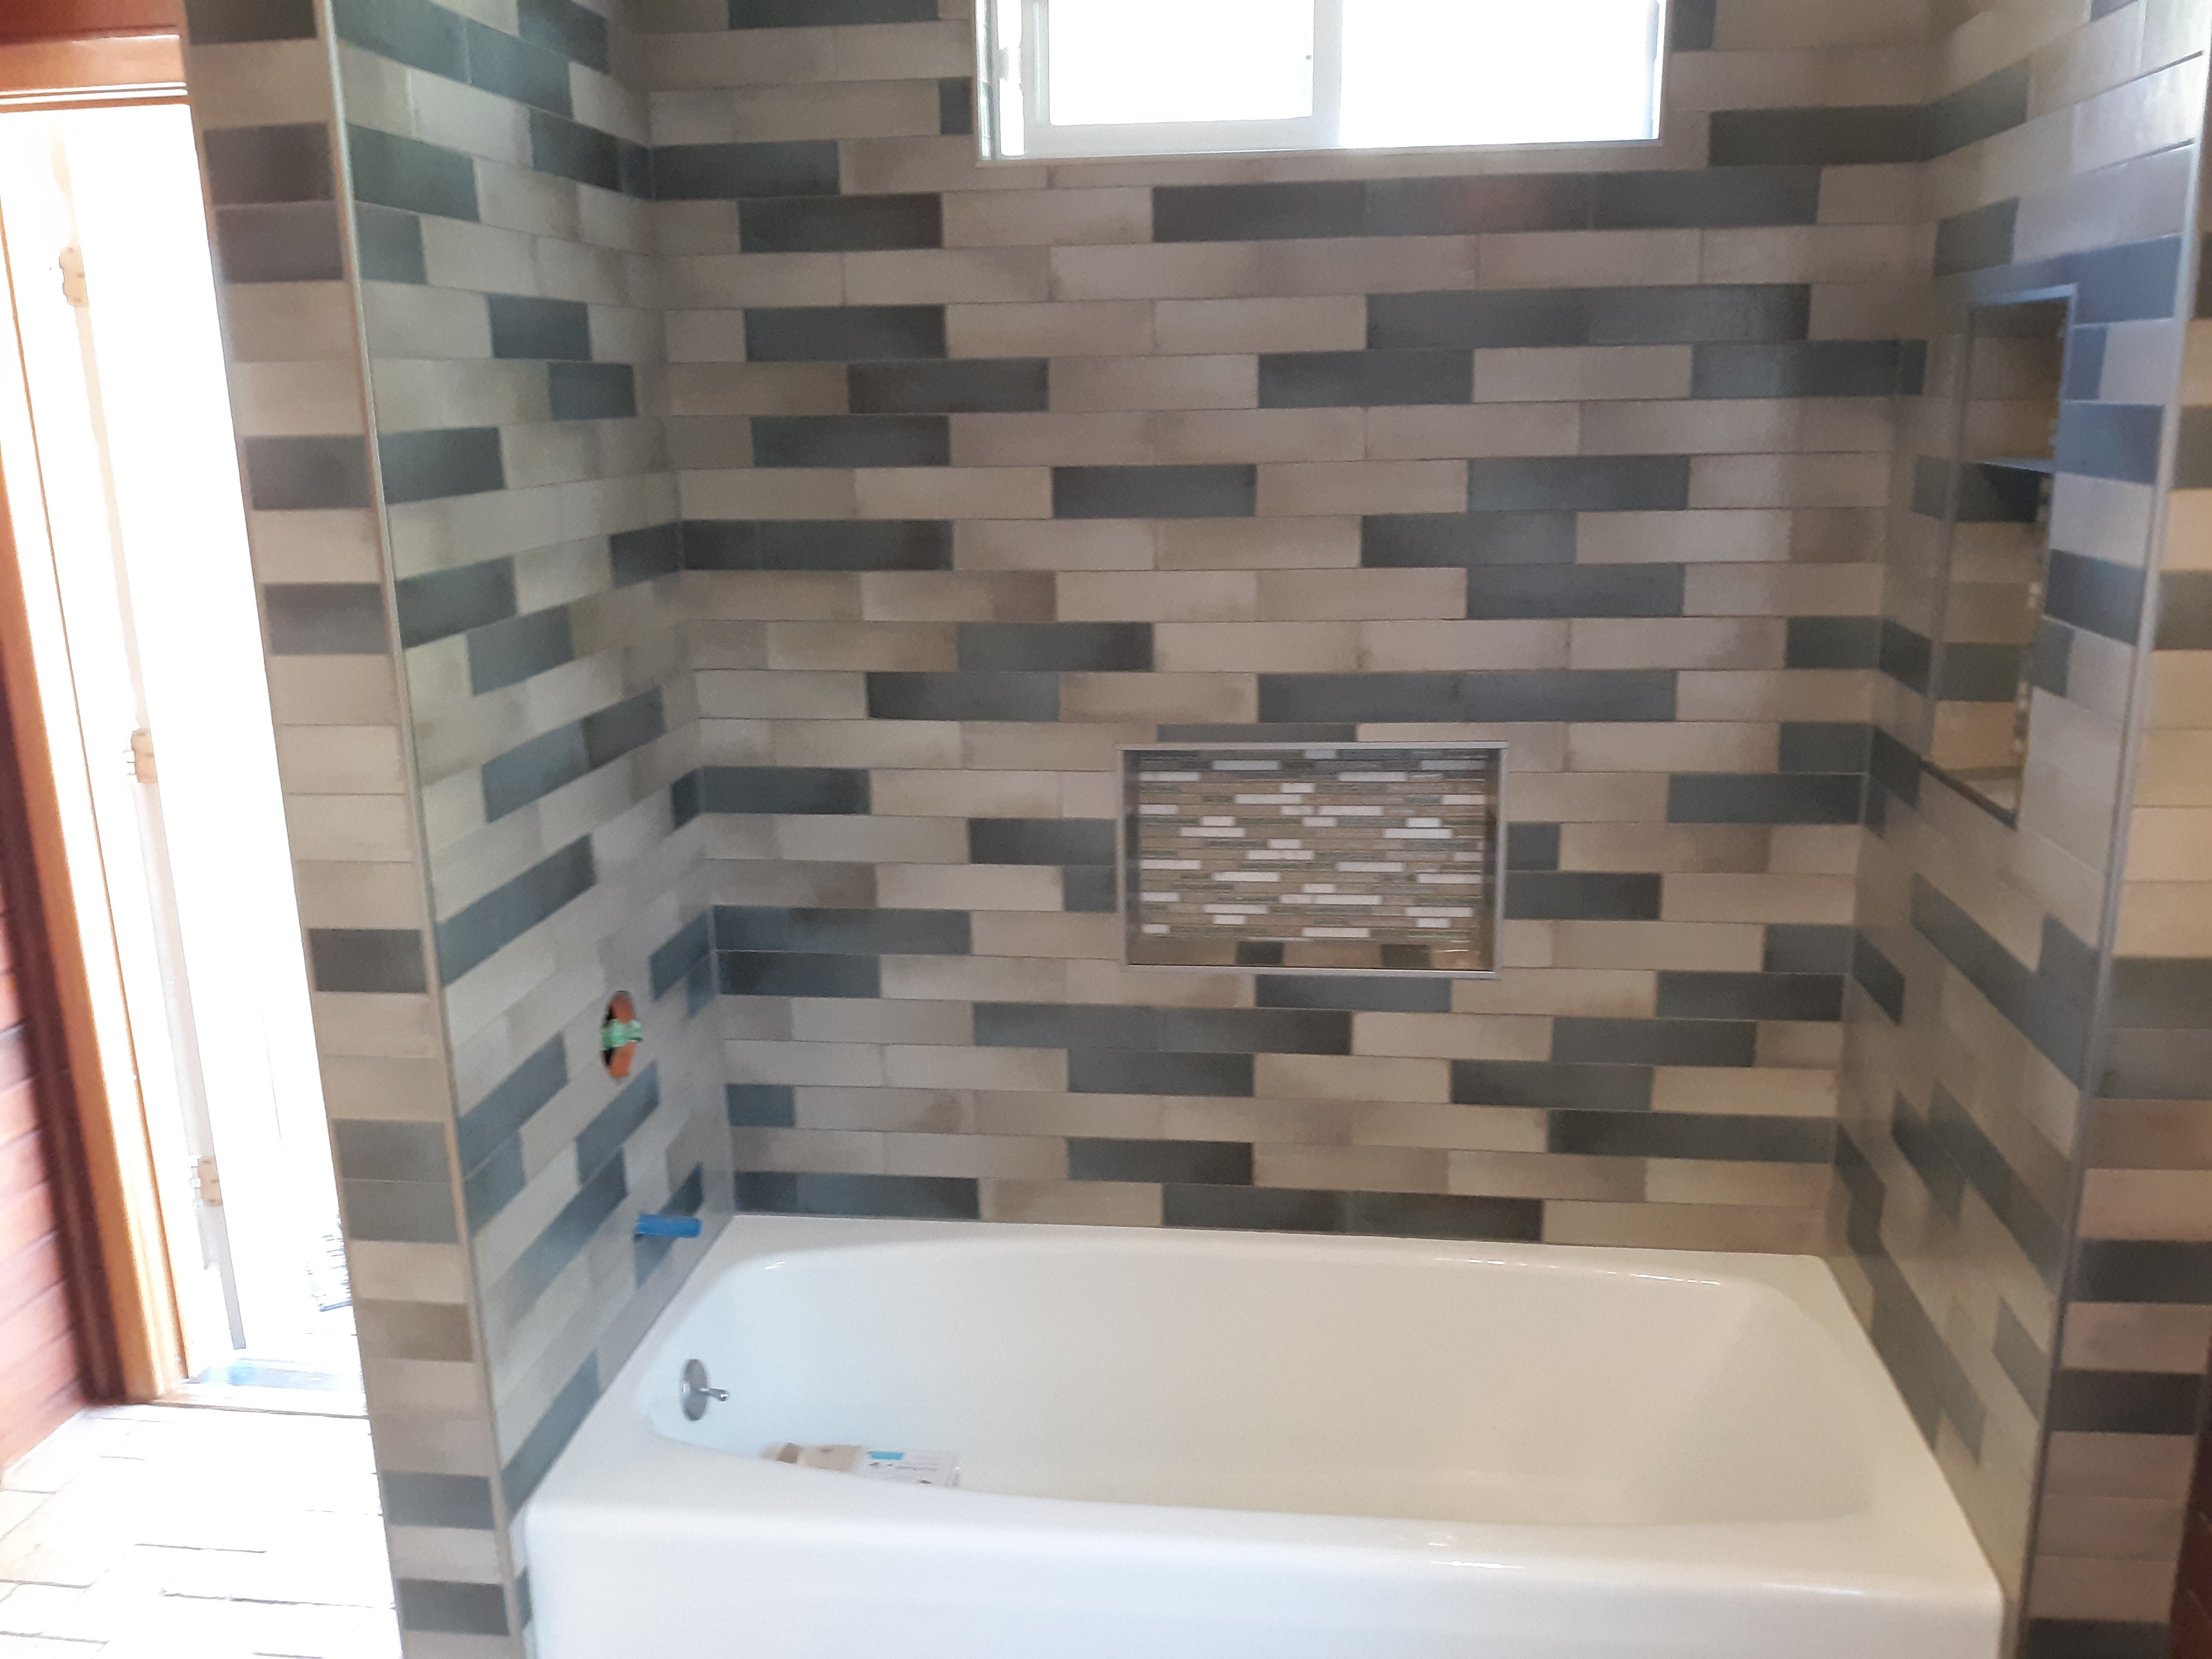 Tile bathtub surround